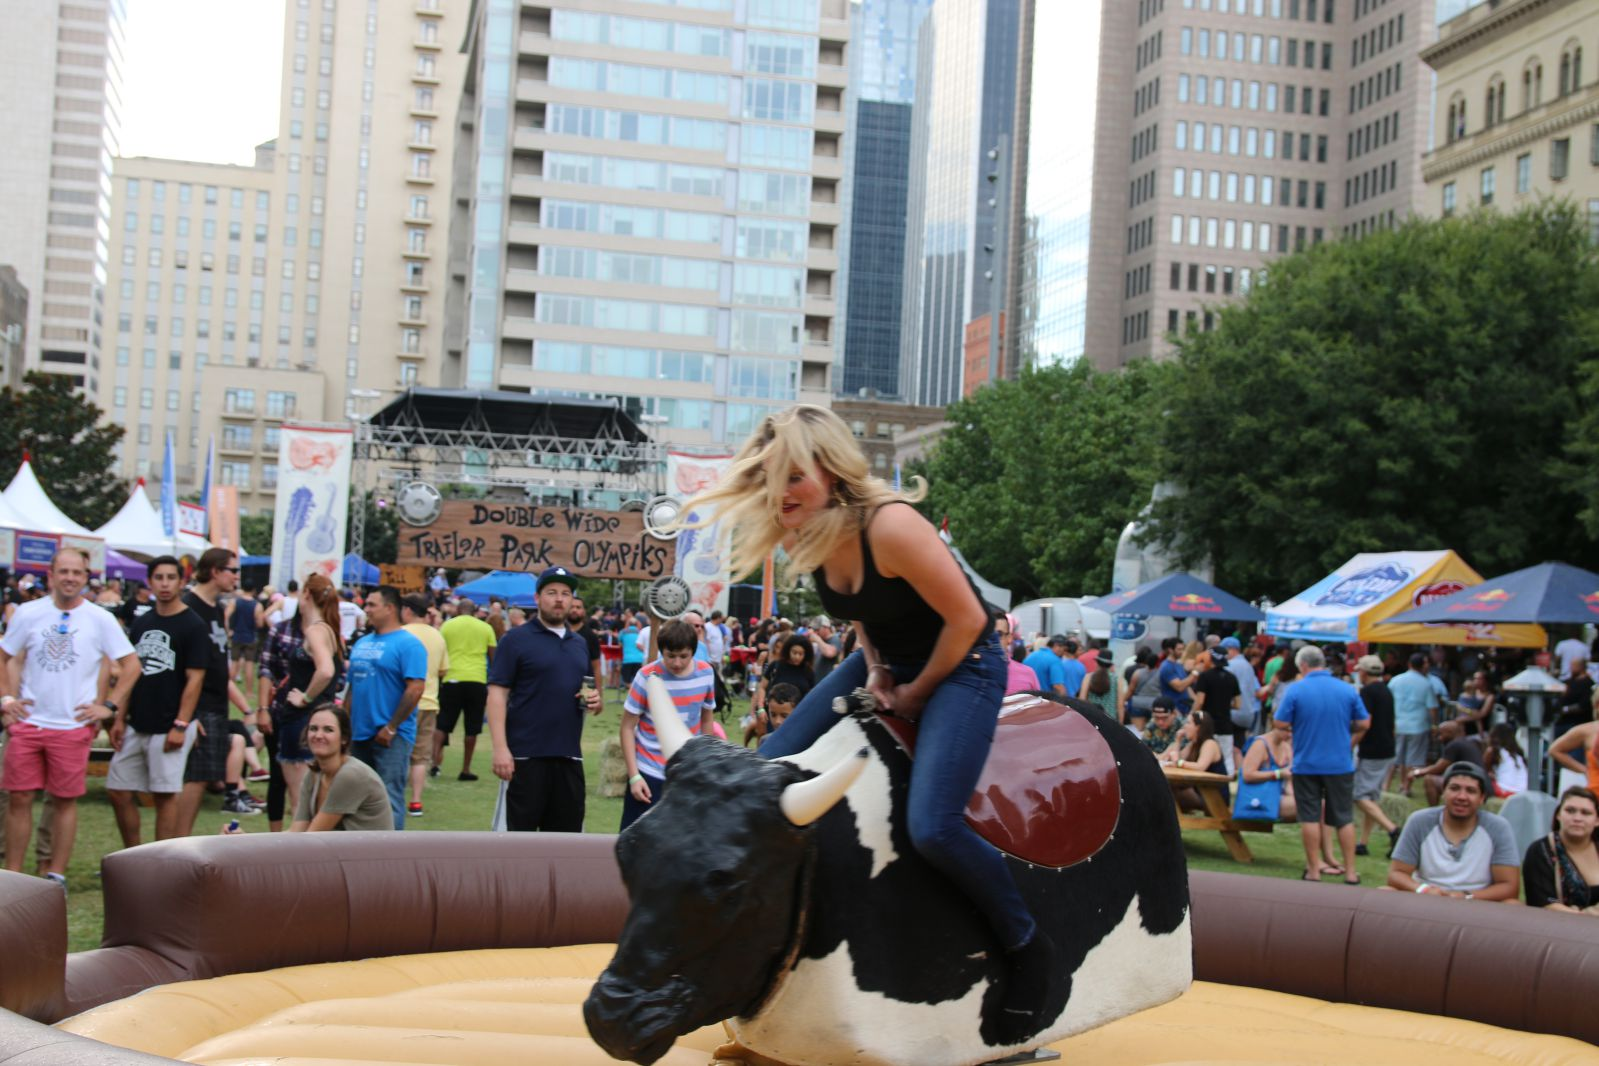 Mechanical bull as part of the Trailer Park Olympics at Smoked Dallas 2016